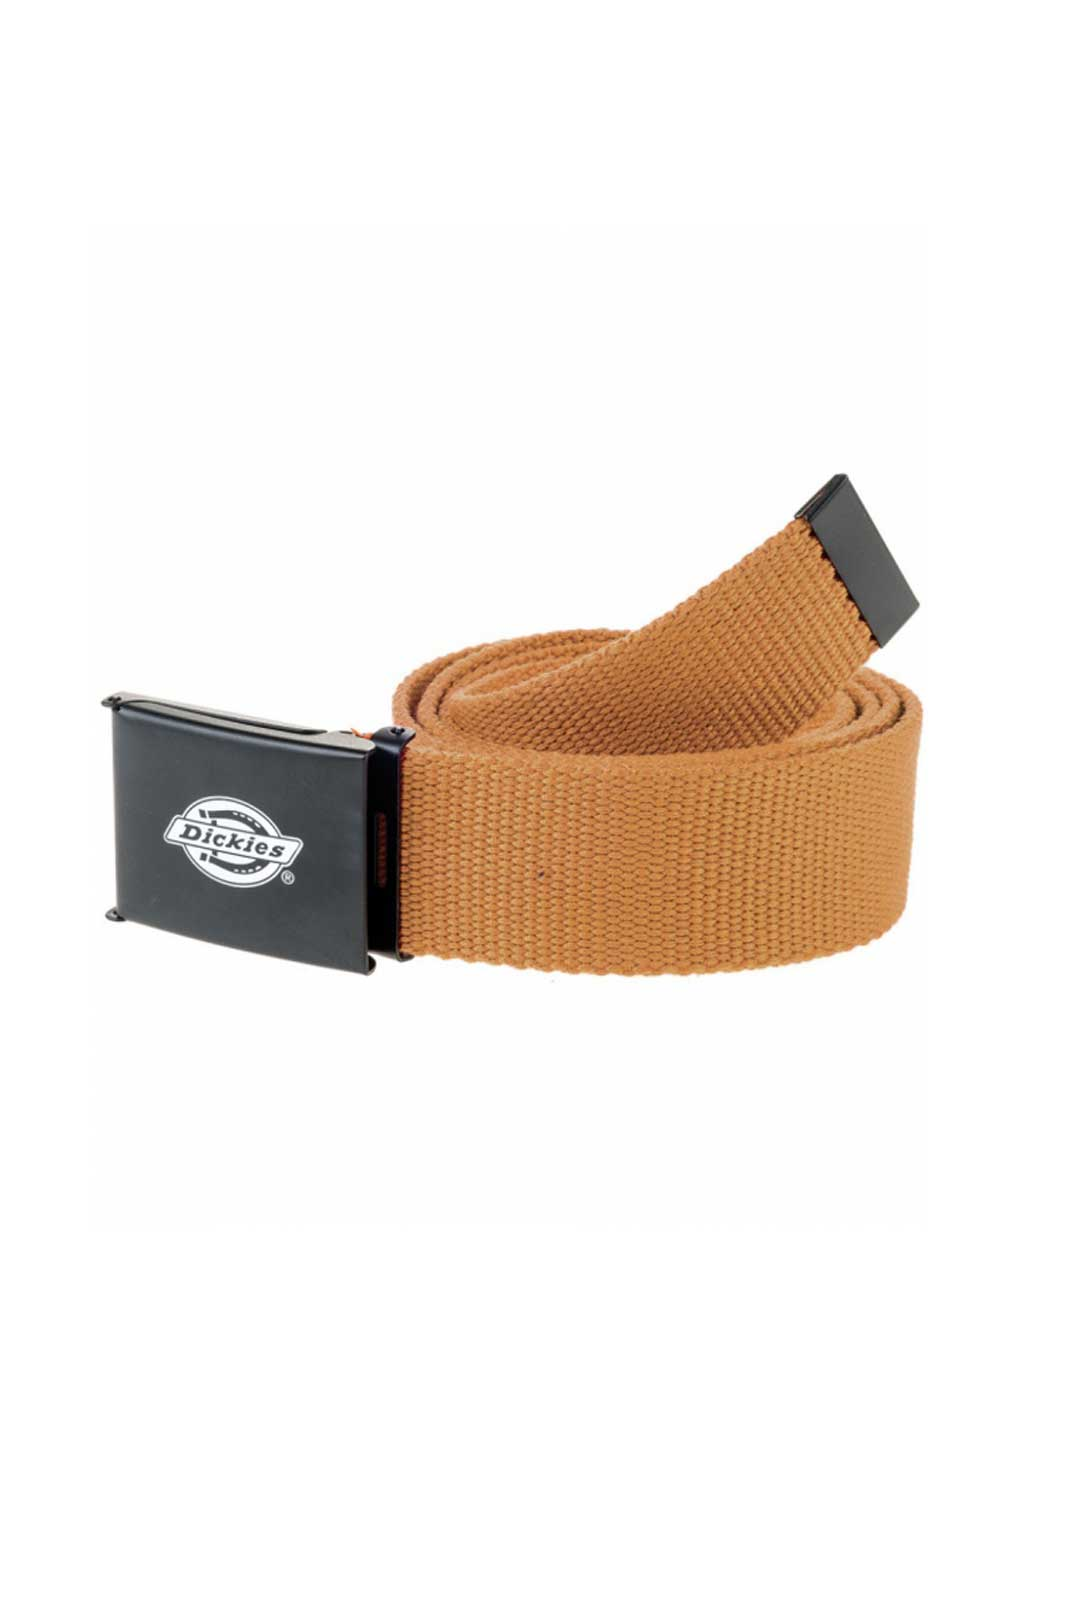 dickies orcutt brown duck belt